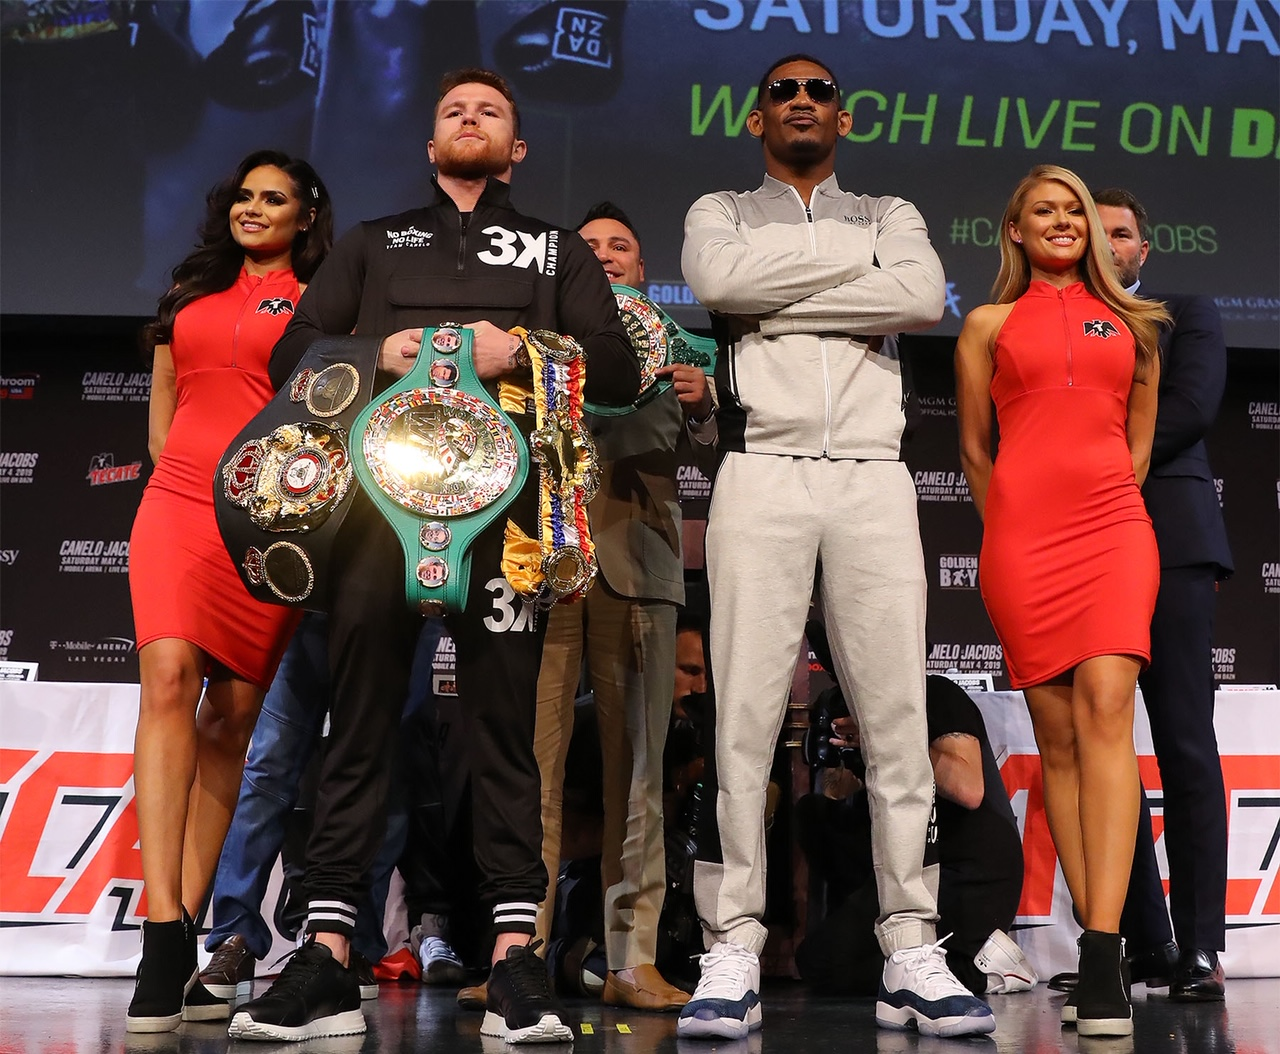 E1A5EEDA BF3D 4991 88C7 0B3599D17082 - Canelo vs. Jacobs, Ortiz vs. Herrera Fight Previews